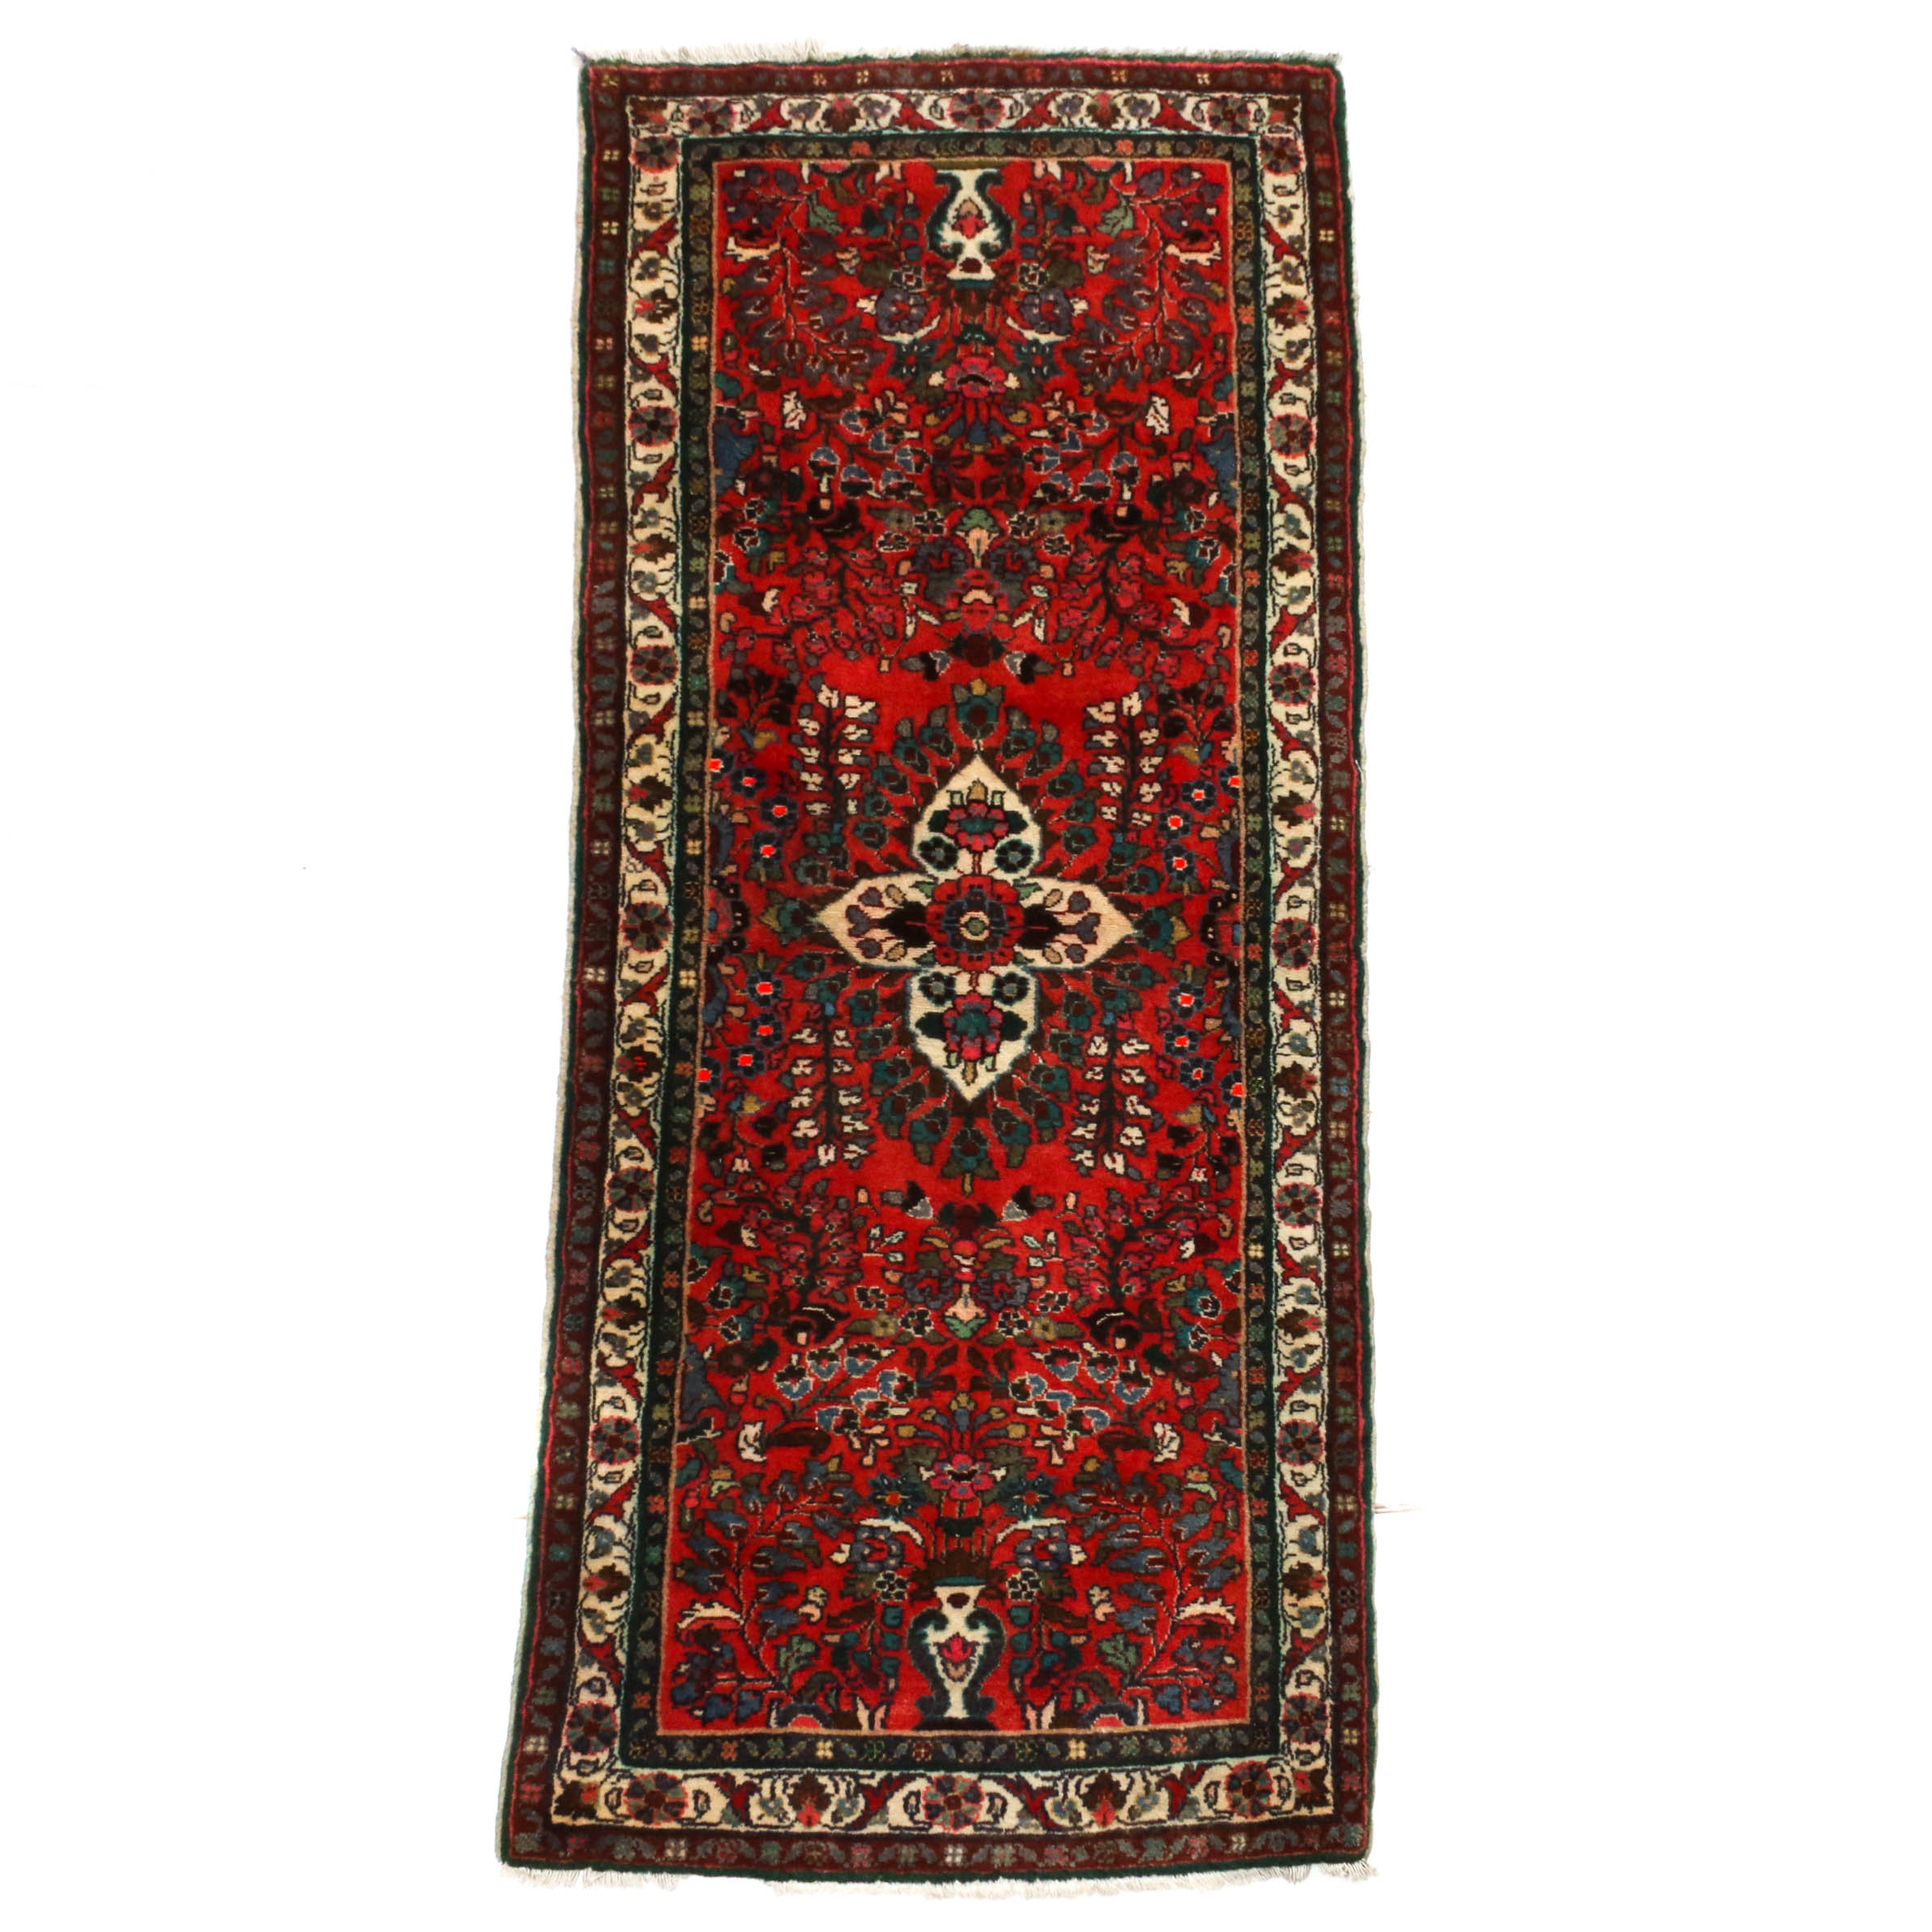 2'9 x 6'10 Hand-Knotted Persian Lilihan Wool Long Rug, Circa 1930